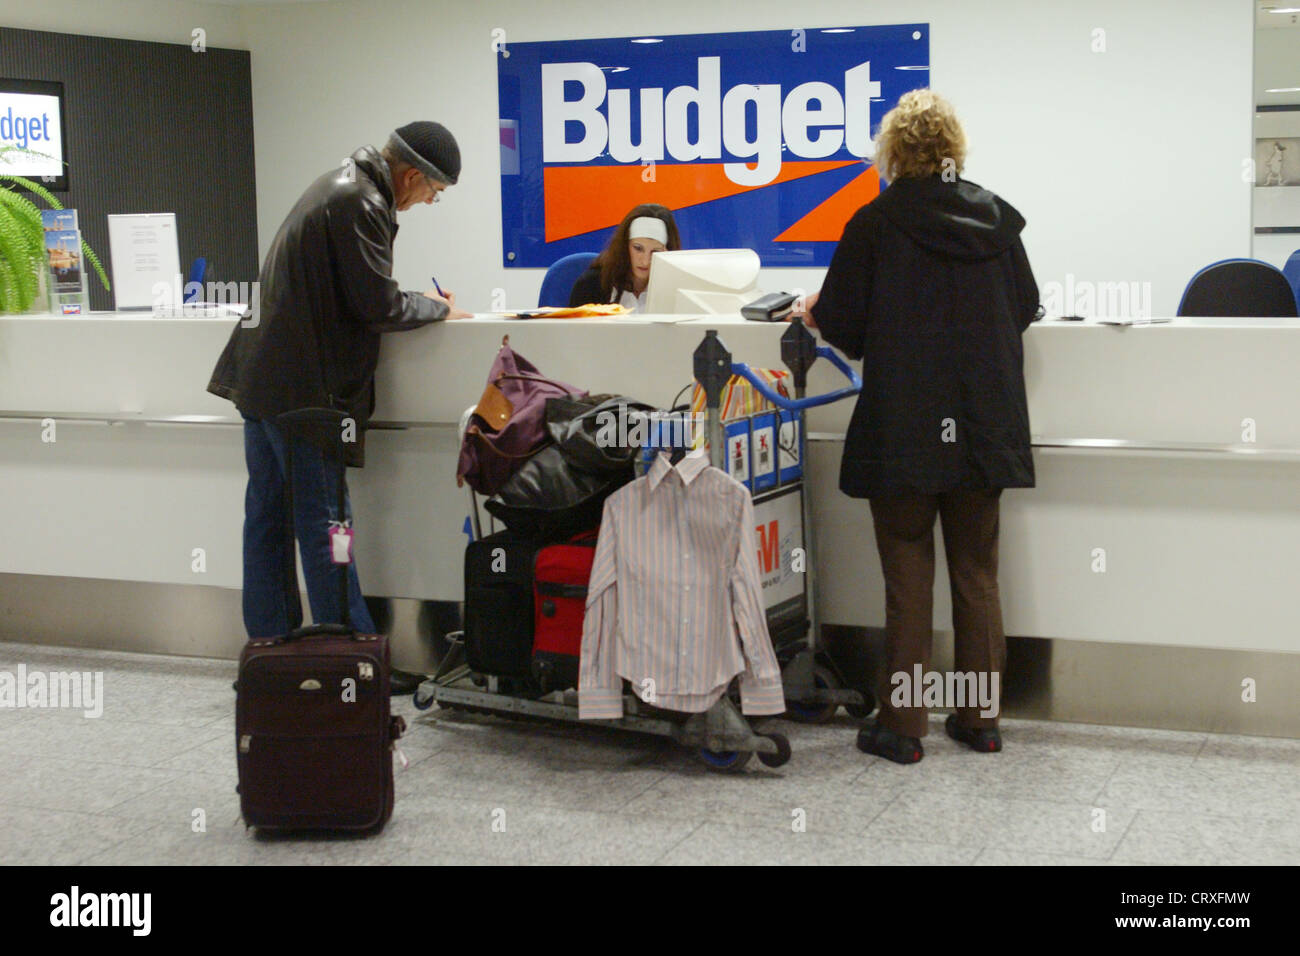 Counter Of Budget Car Rental